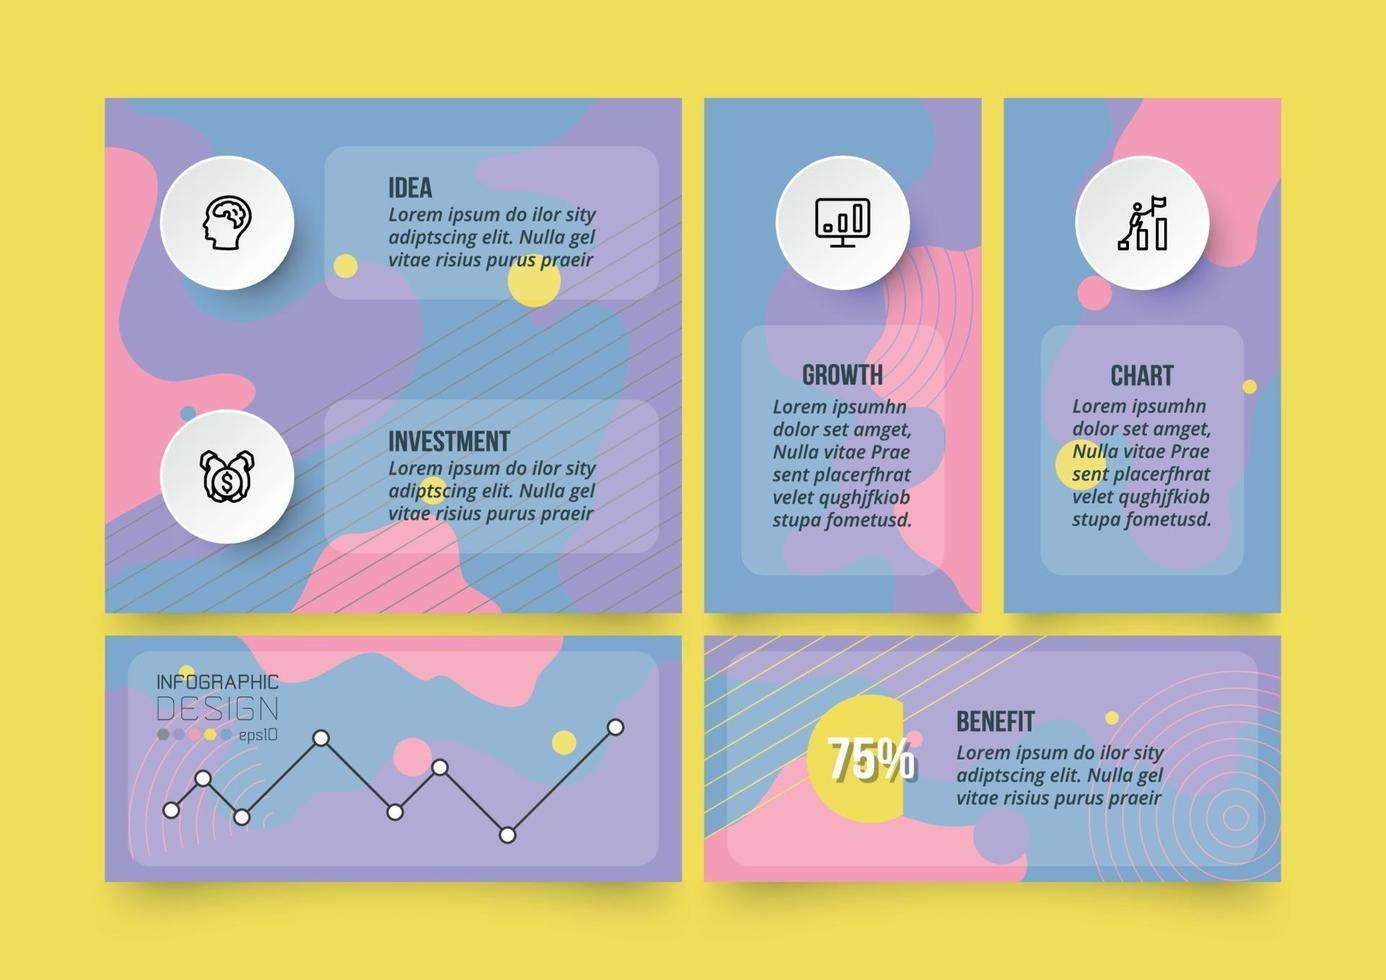 Business or marketing concept infographic template. vector